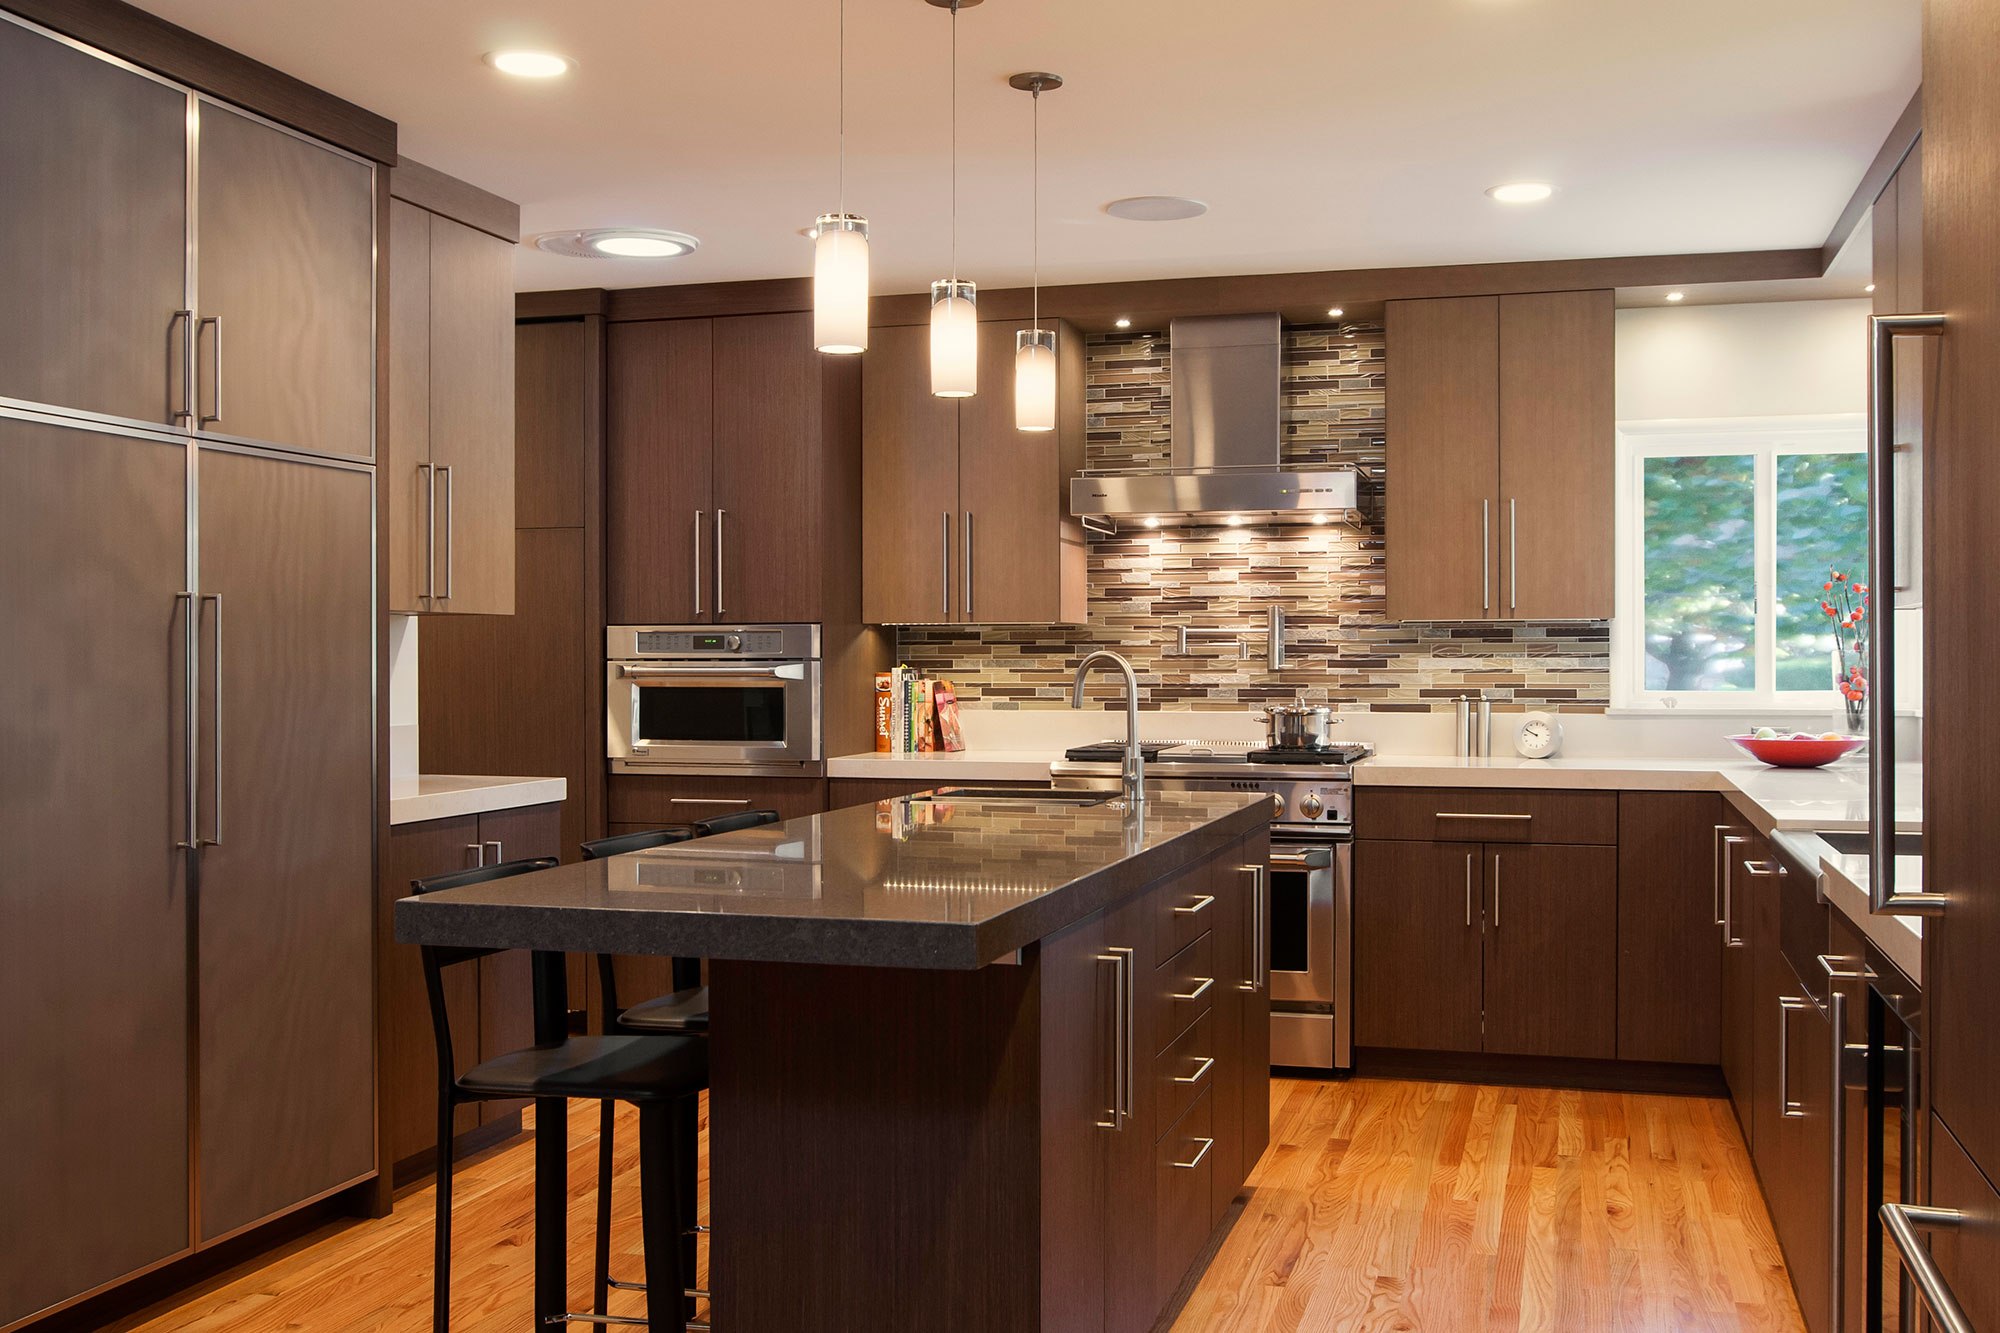 RemodelWest Cozy Modern Kitchen Remodel Willow Glen